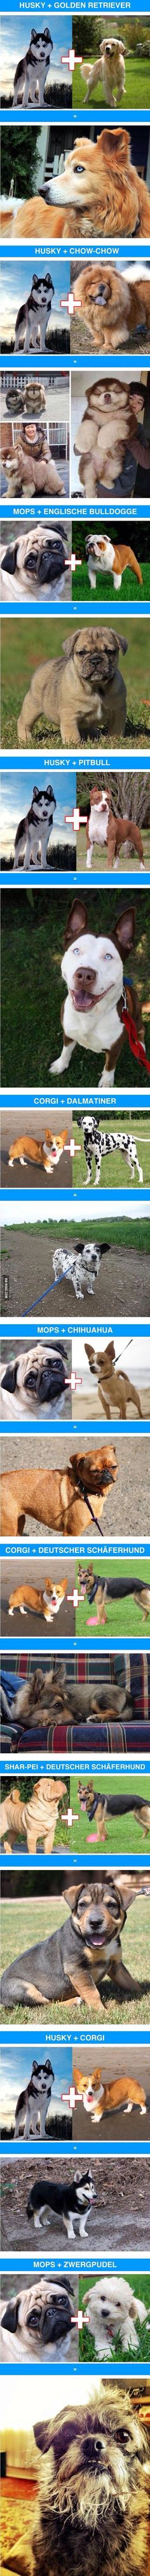 dog breeds mixed with others. Some dog breeds mixed with others.Some dog breeds mixed with others. Animal Jokes, Funny Animal Memes, Dog Memes, Funny Dogs, Dog Humor, Cute Puppies, Cute Dogs, Dogs And Puppies, Doggies